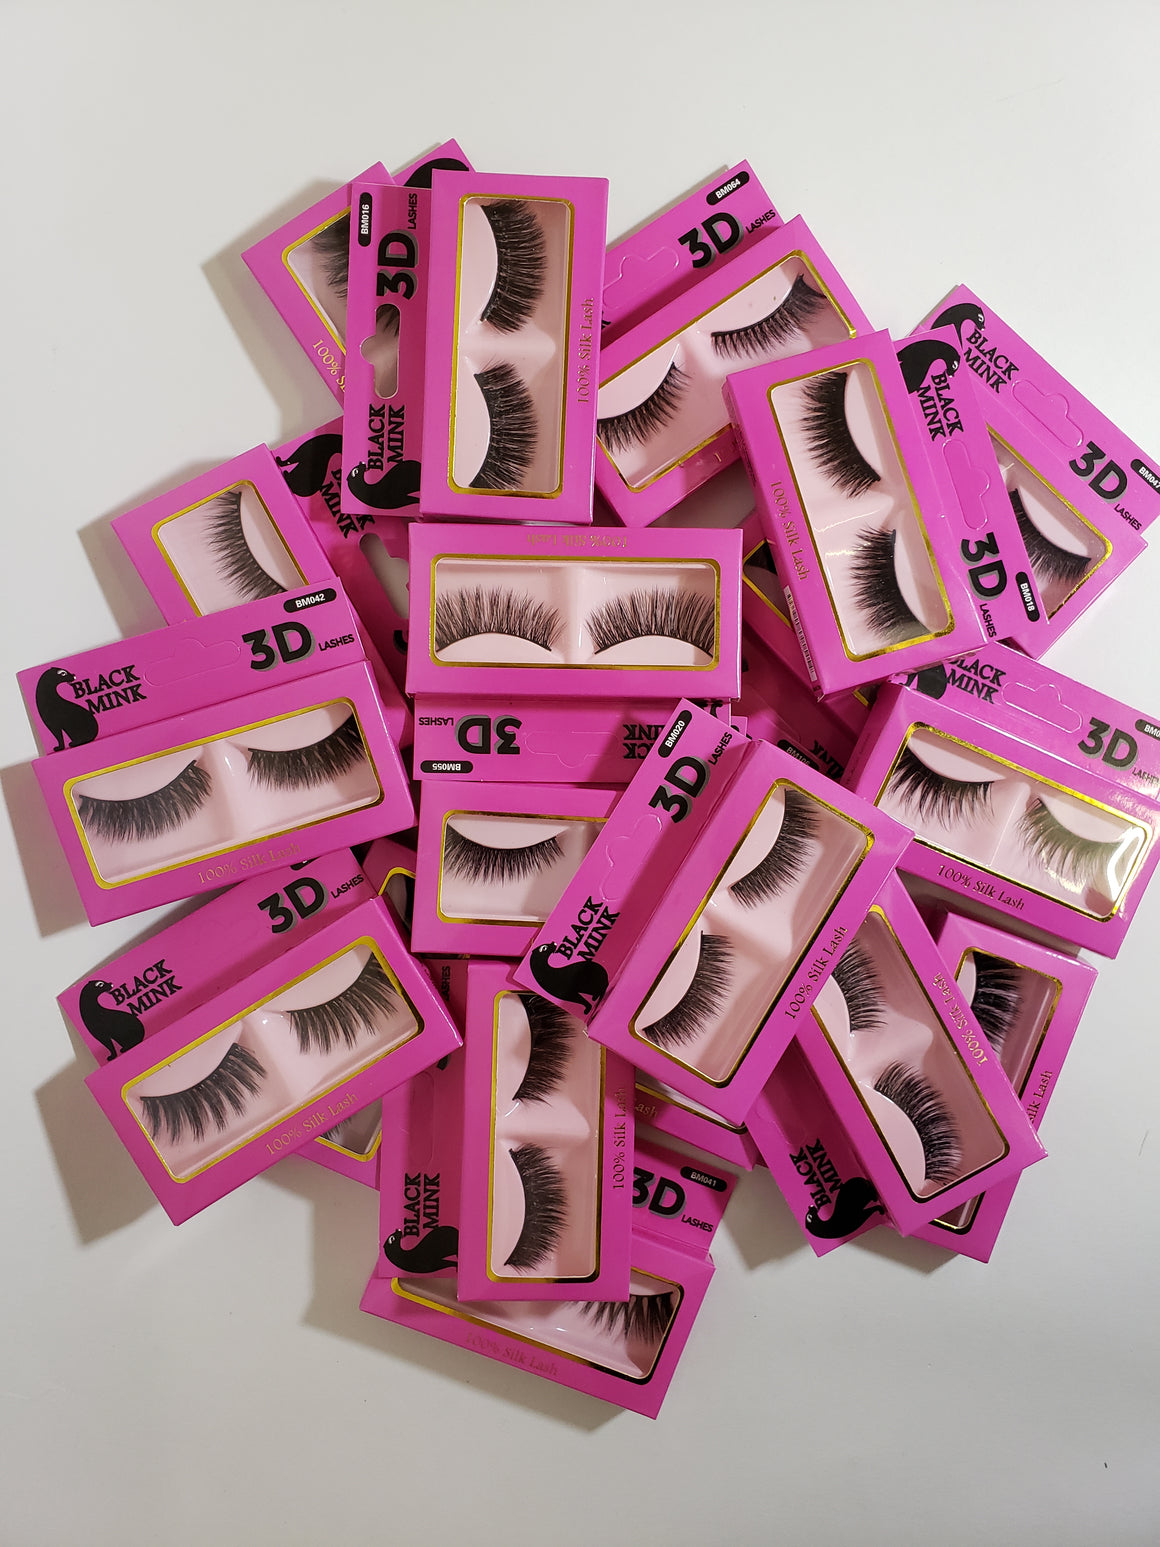 Black Mink 3D Lashes - Hair Crown Beauty Supply